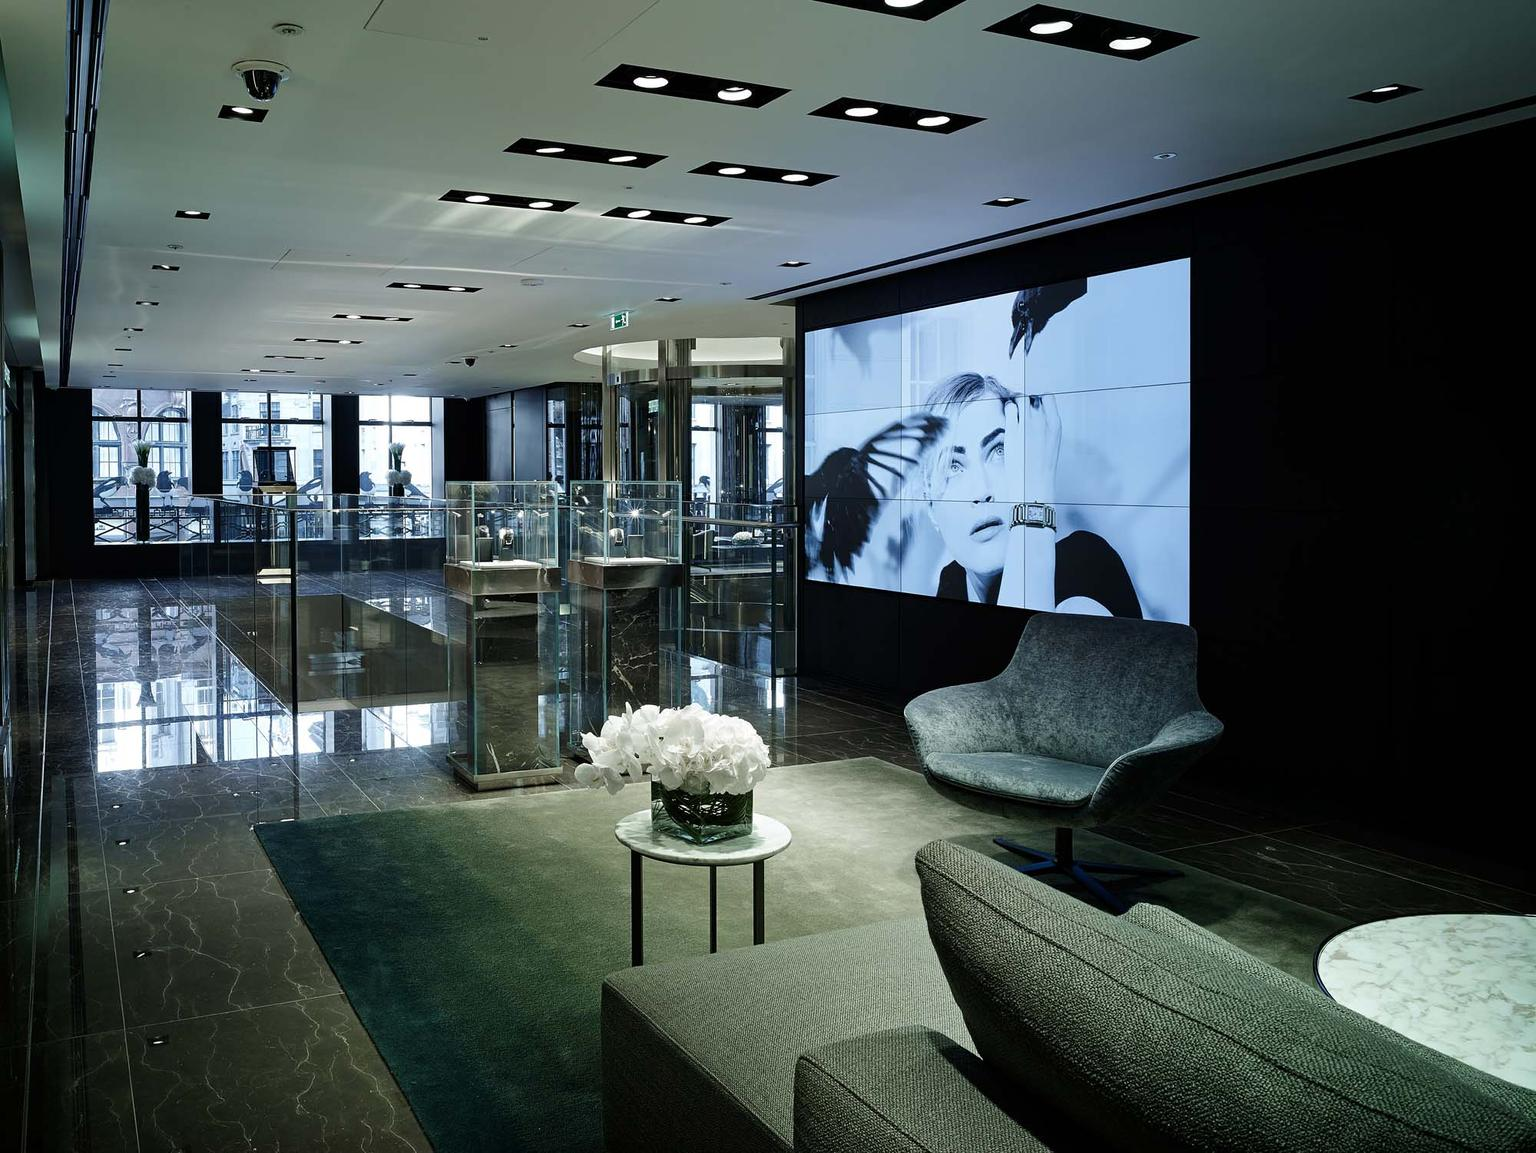 A special VIP lounge for collectors and connoisseurs is situated on the first floor of Watches of Switzerland, London's gargantuan new luxury watch emporium on Regent Street.